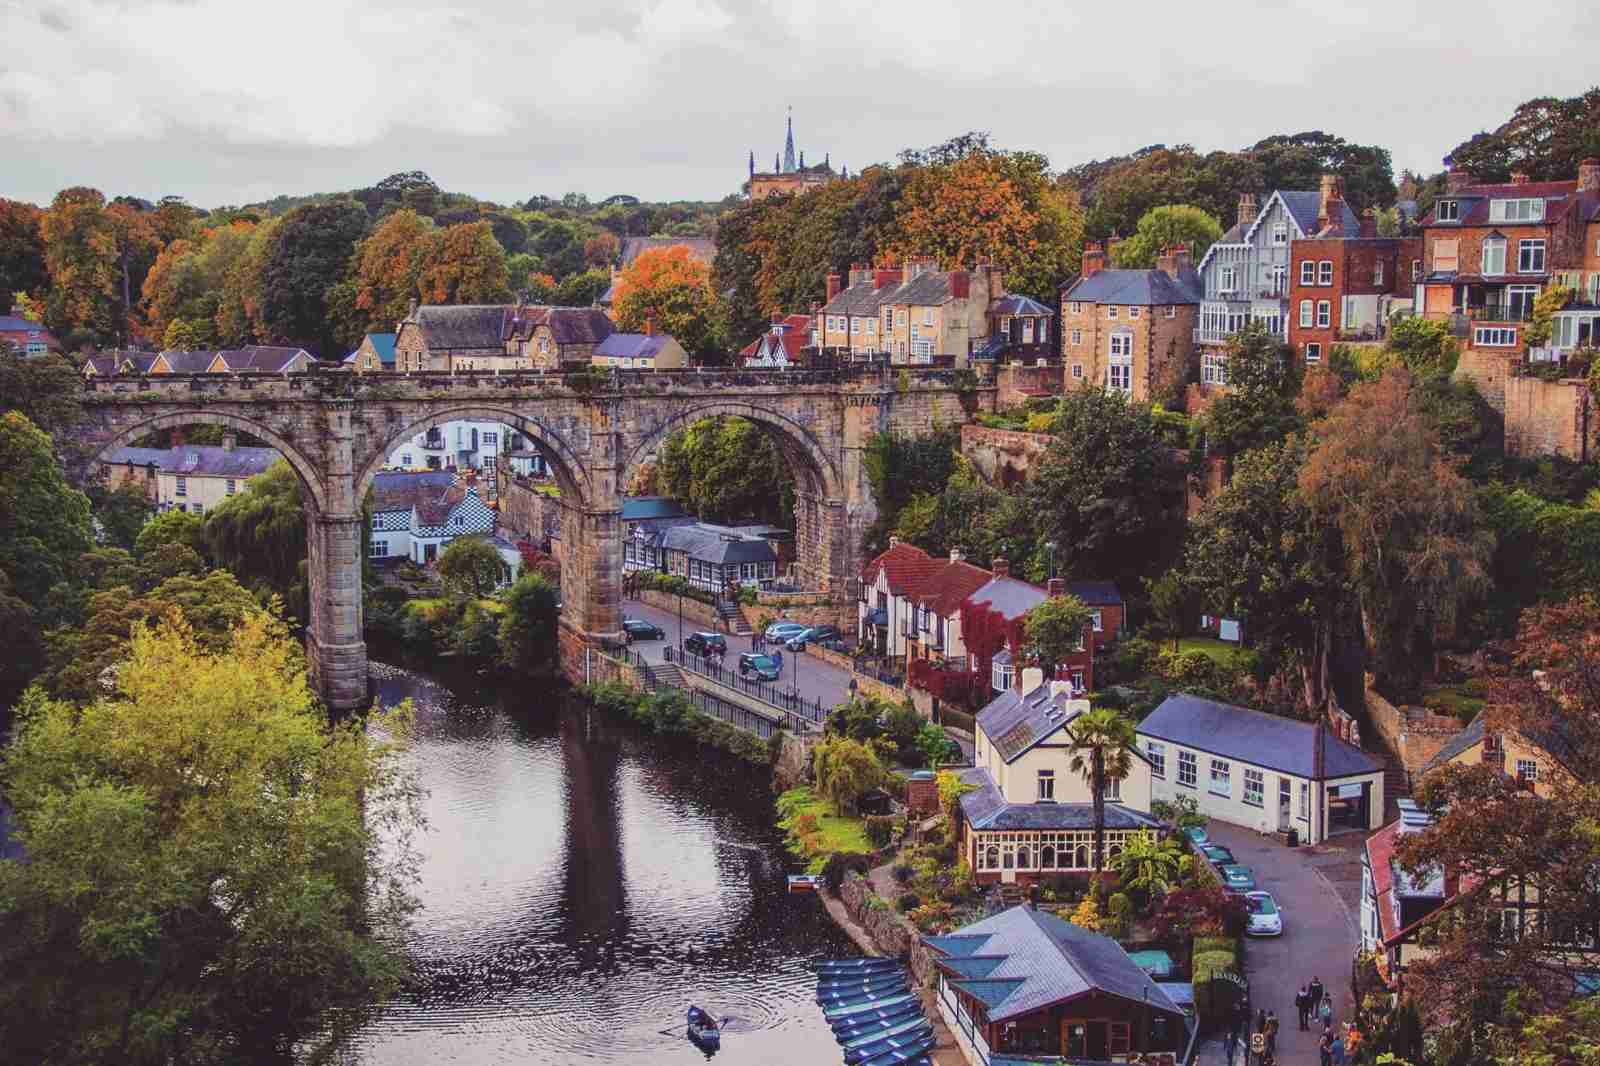 Knaresborough, United Kingdom. (Photo by Sam Green/EyeEm/Getty Images)